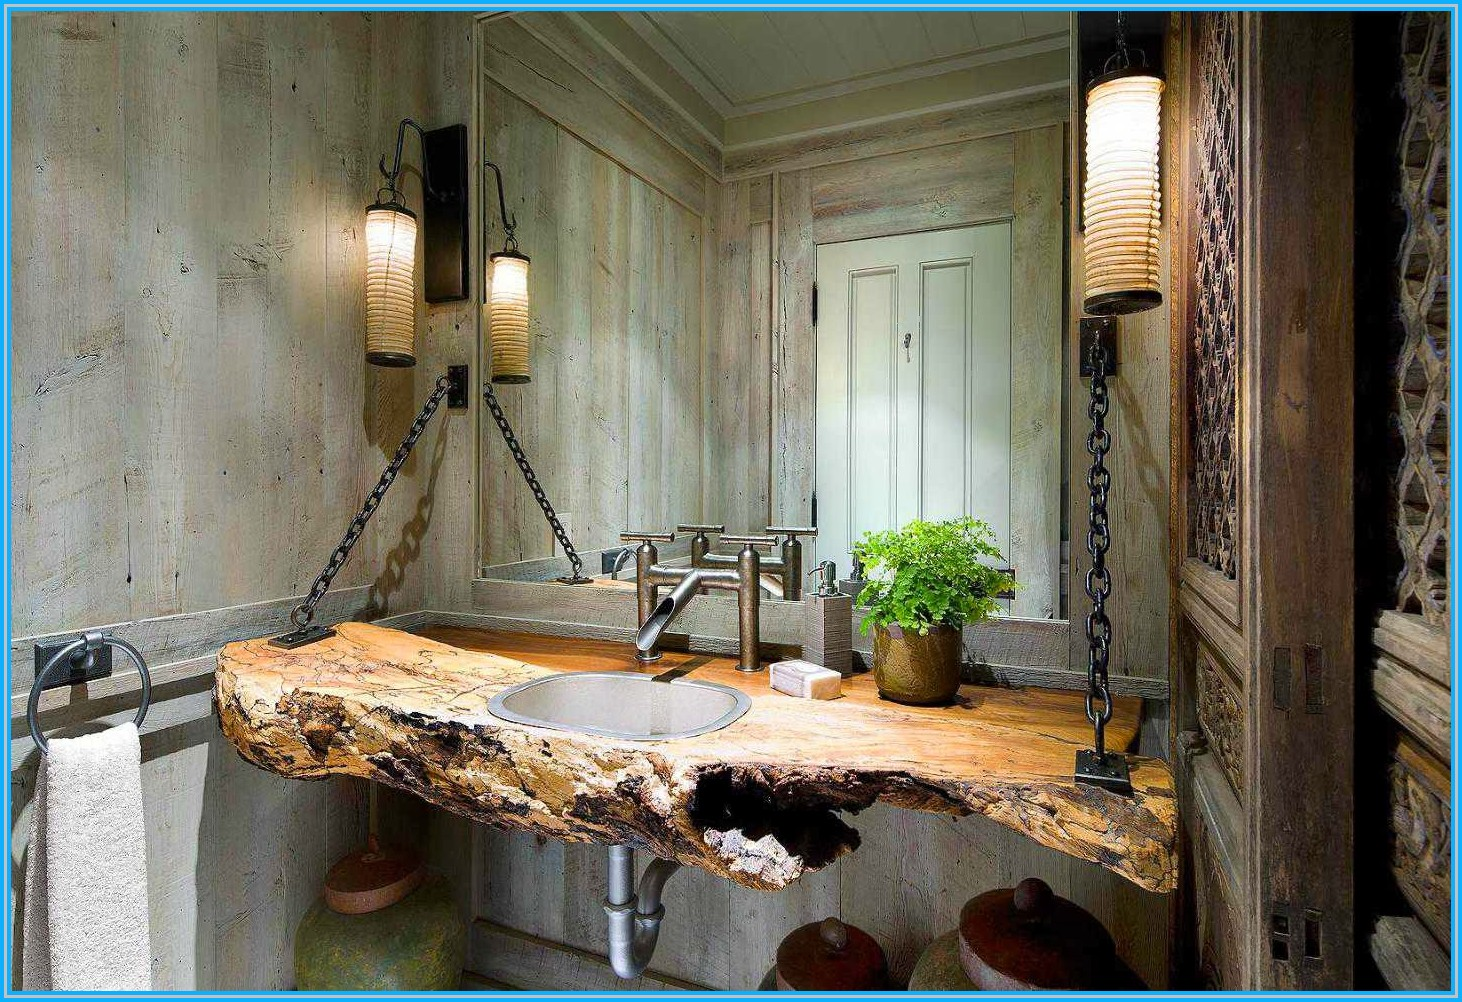 Rustic Bathroom Designs: 35+ Exceptional Rustic Bathroom Designs Filled With